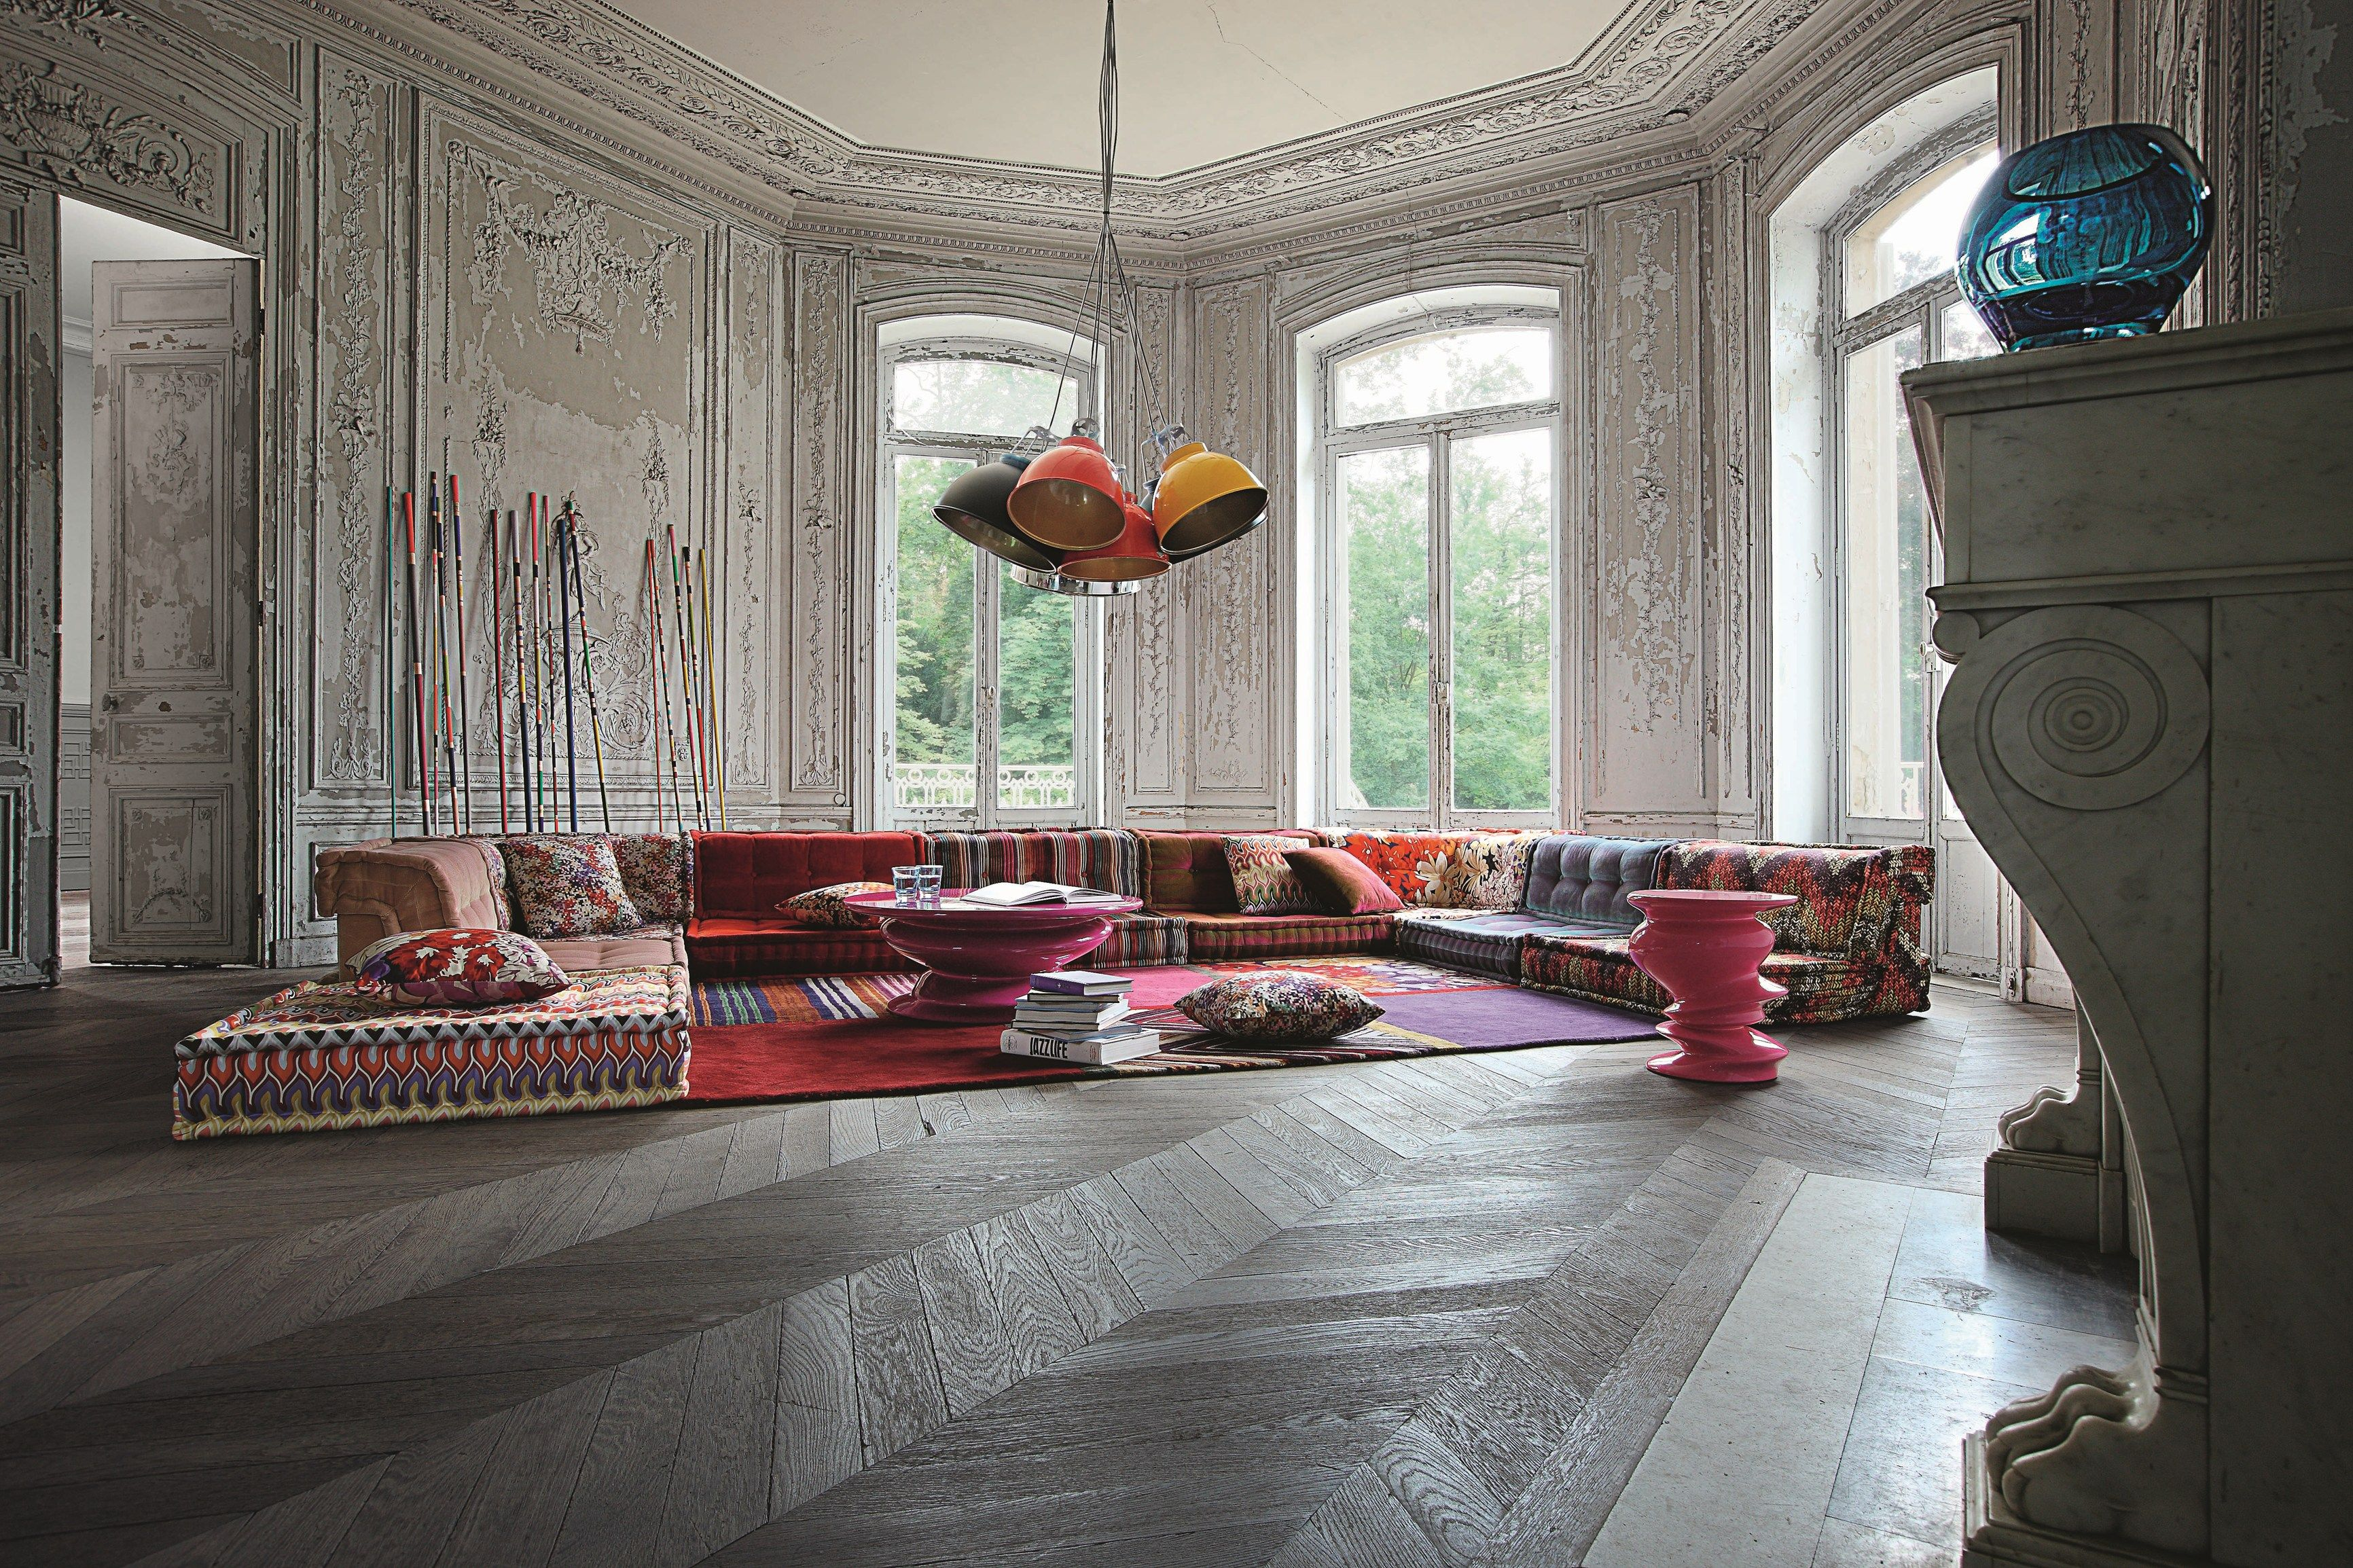 Sectional Fabric Sofa Mah Jong Missoni Home By Roche Bobois Design Hans Hopfer 보헤미안 거실